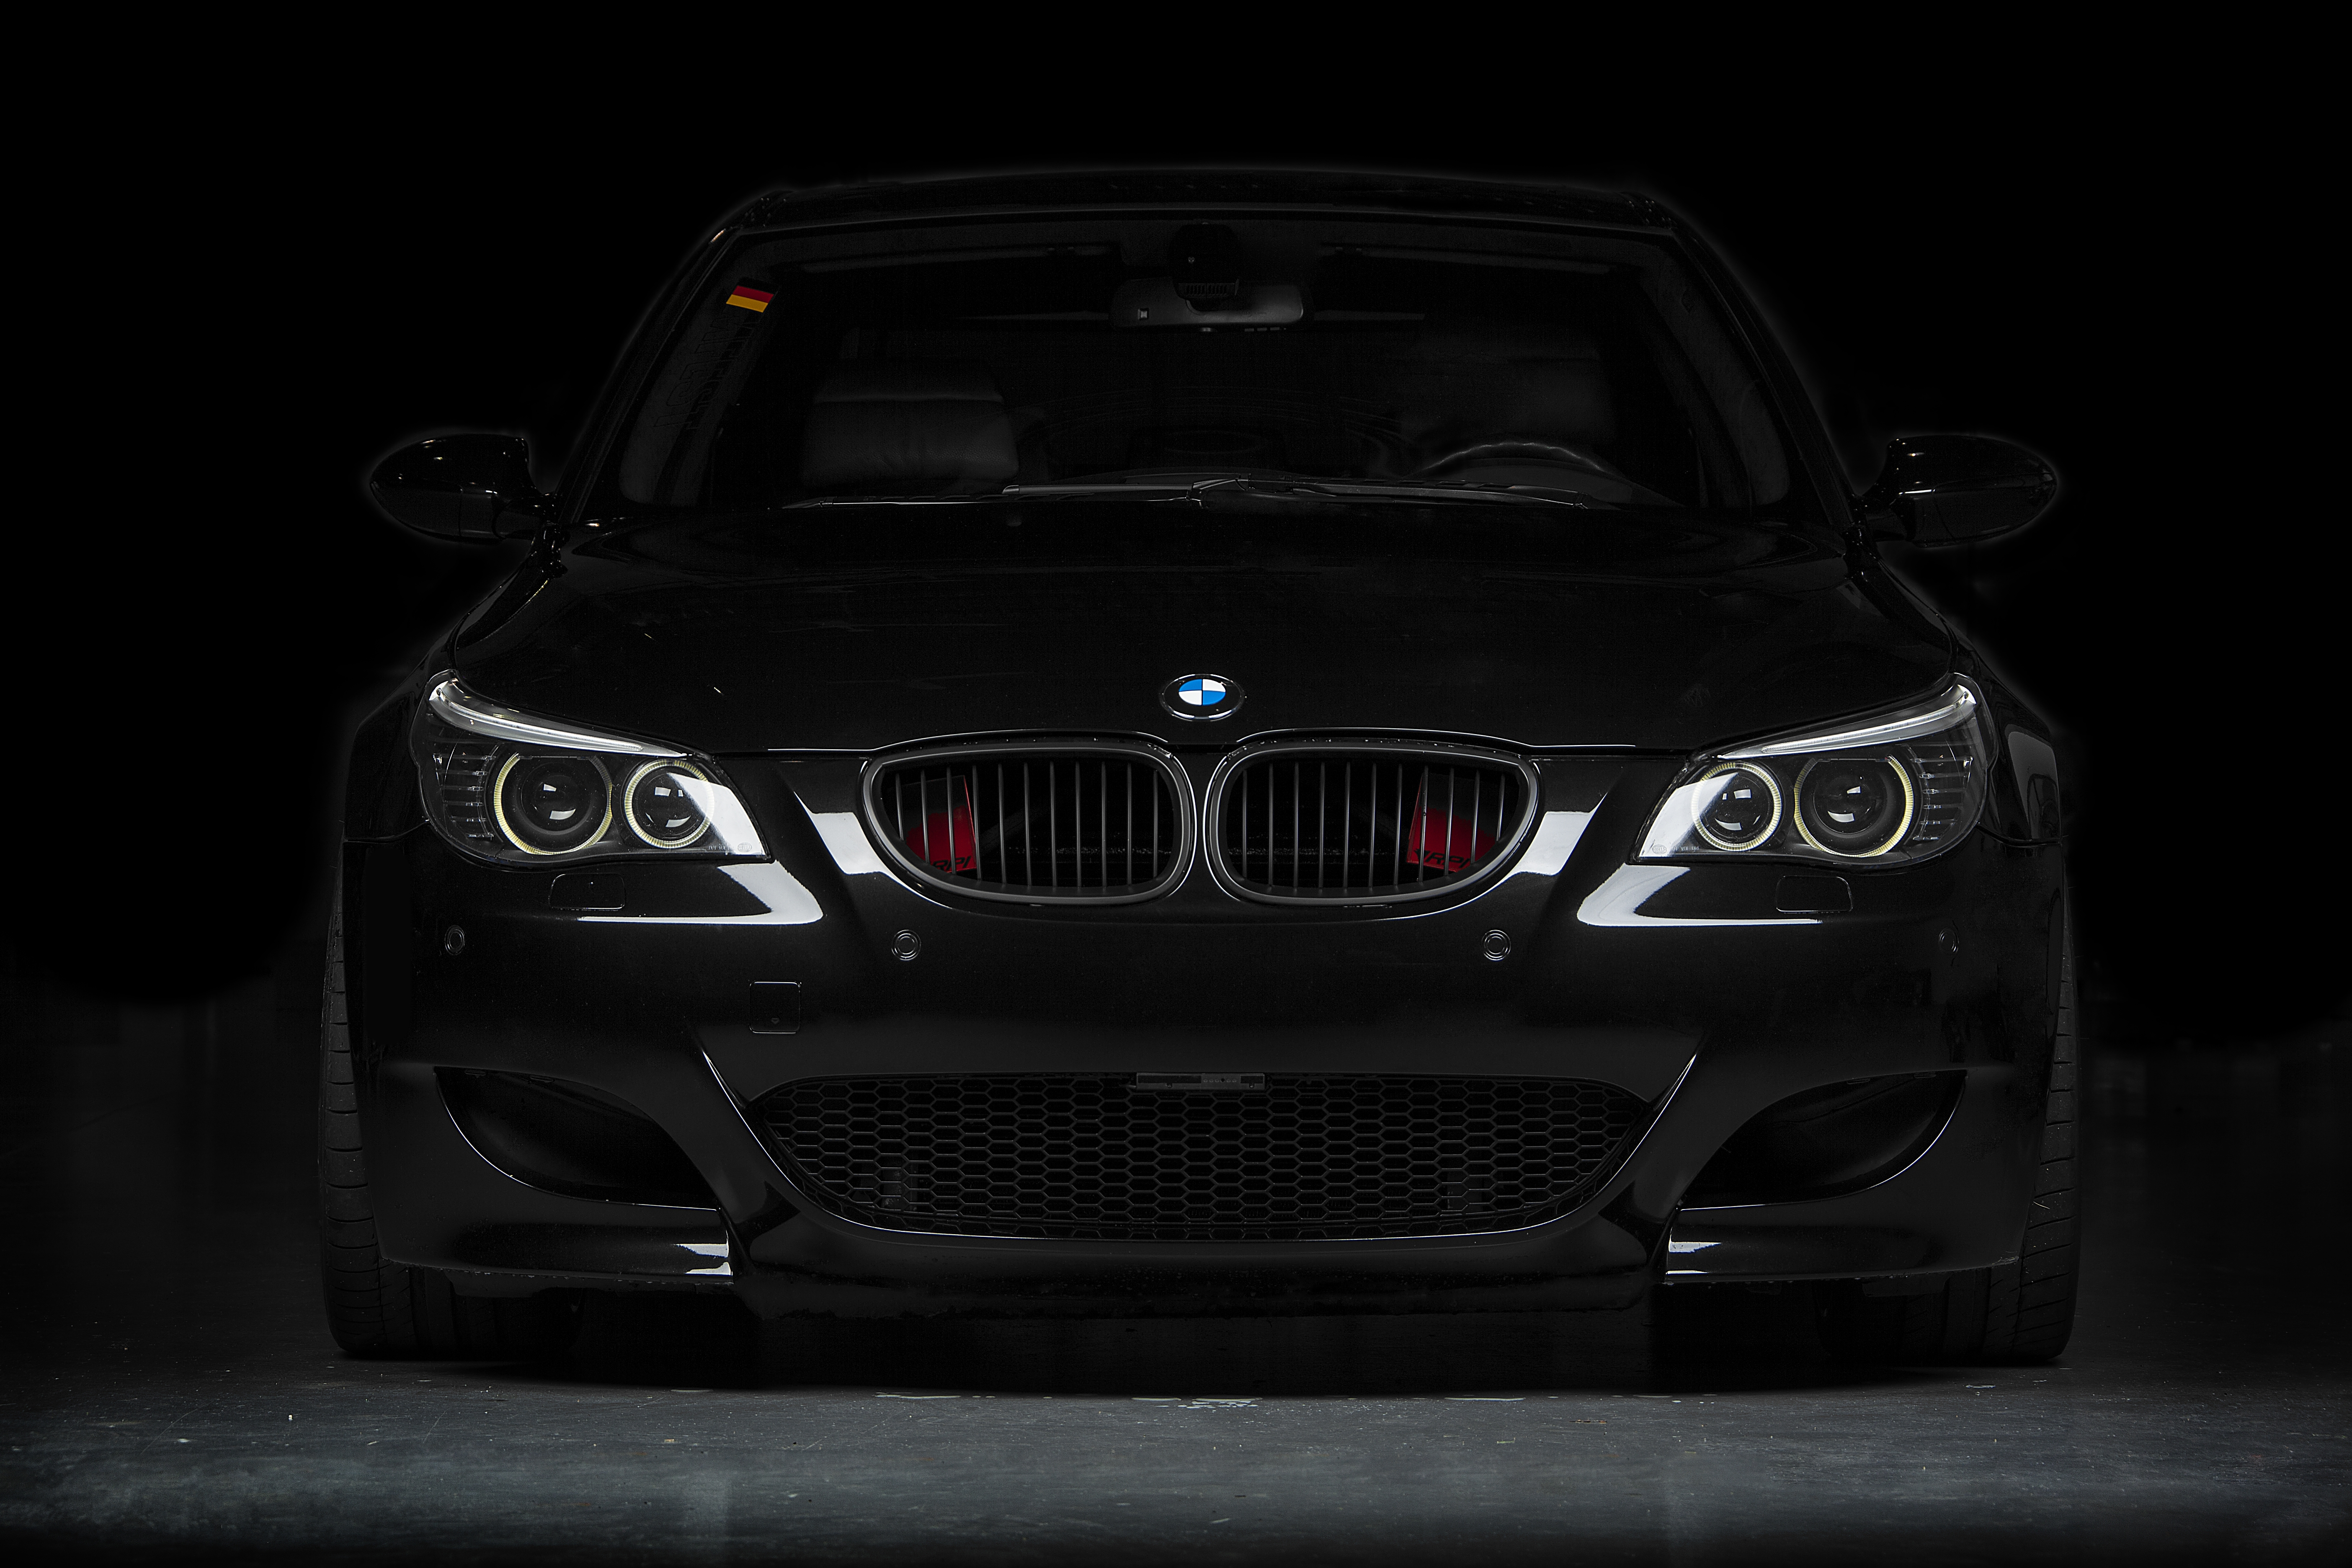 BMW M5 HD Wallpapers Images Backgrounds 5616x3744